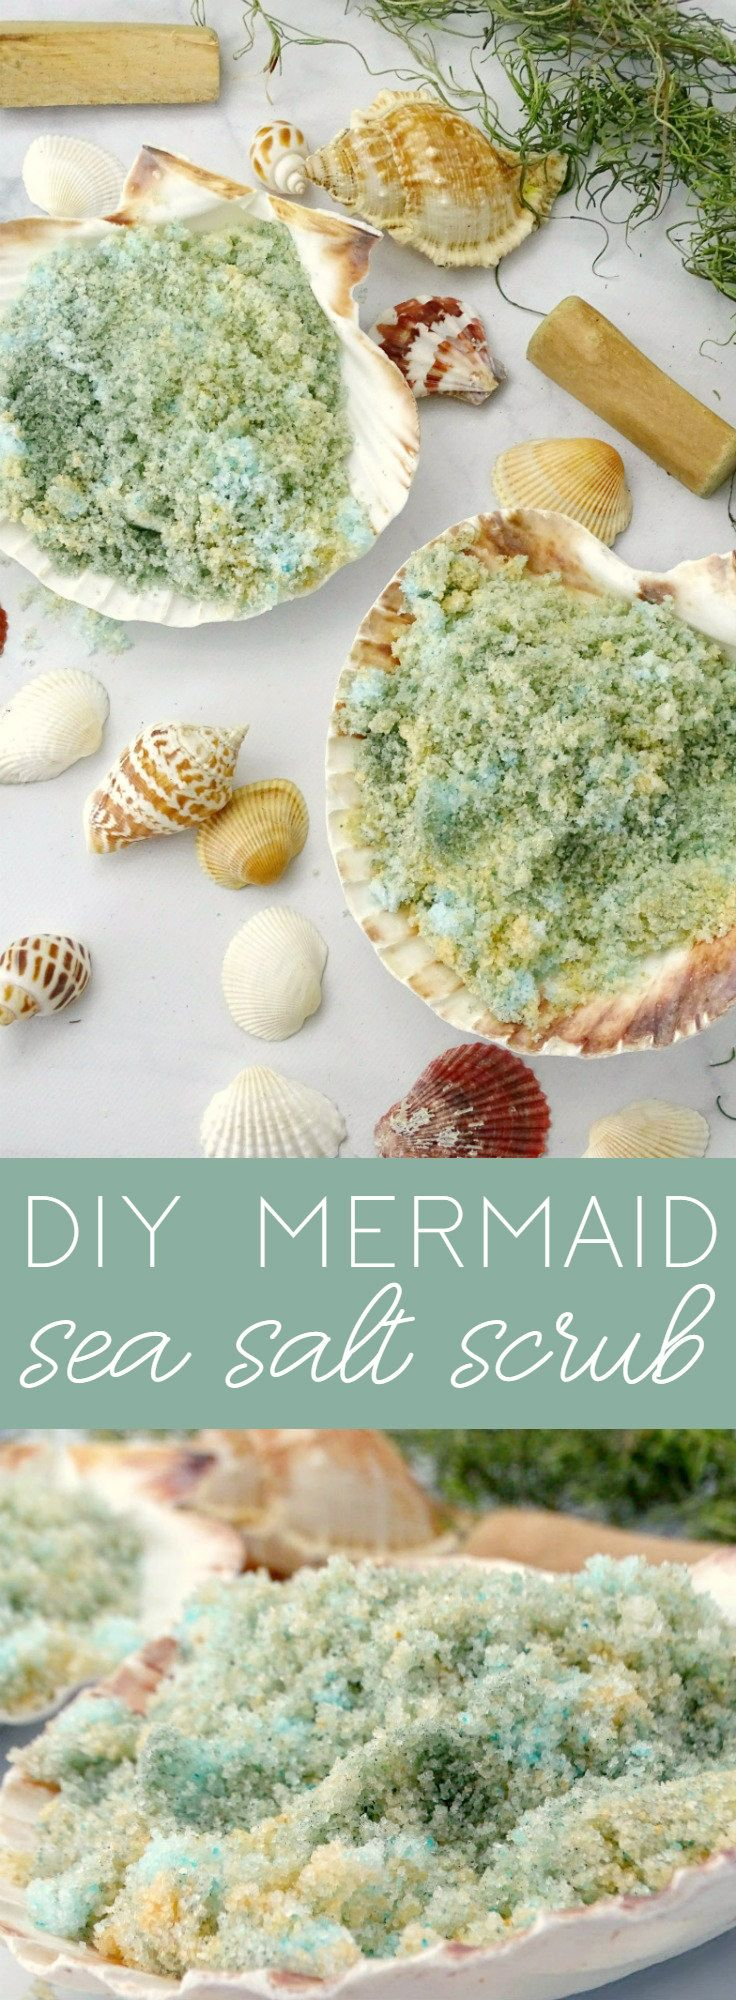 Let your inner mermaid shine with this DIY Mermaid Sea Salt Scrub that gently exfoliates, moisturizes, and gives your skin a summer glow!